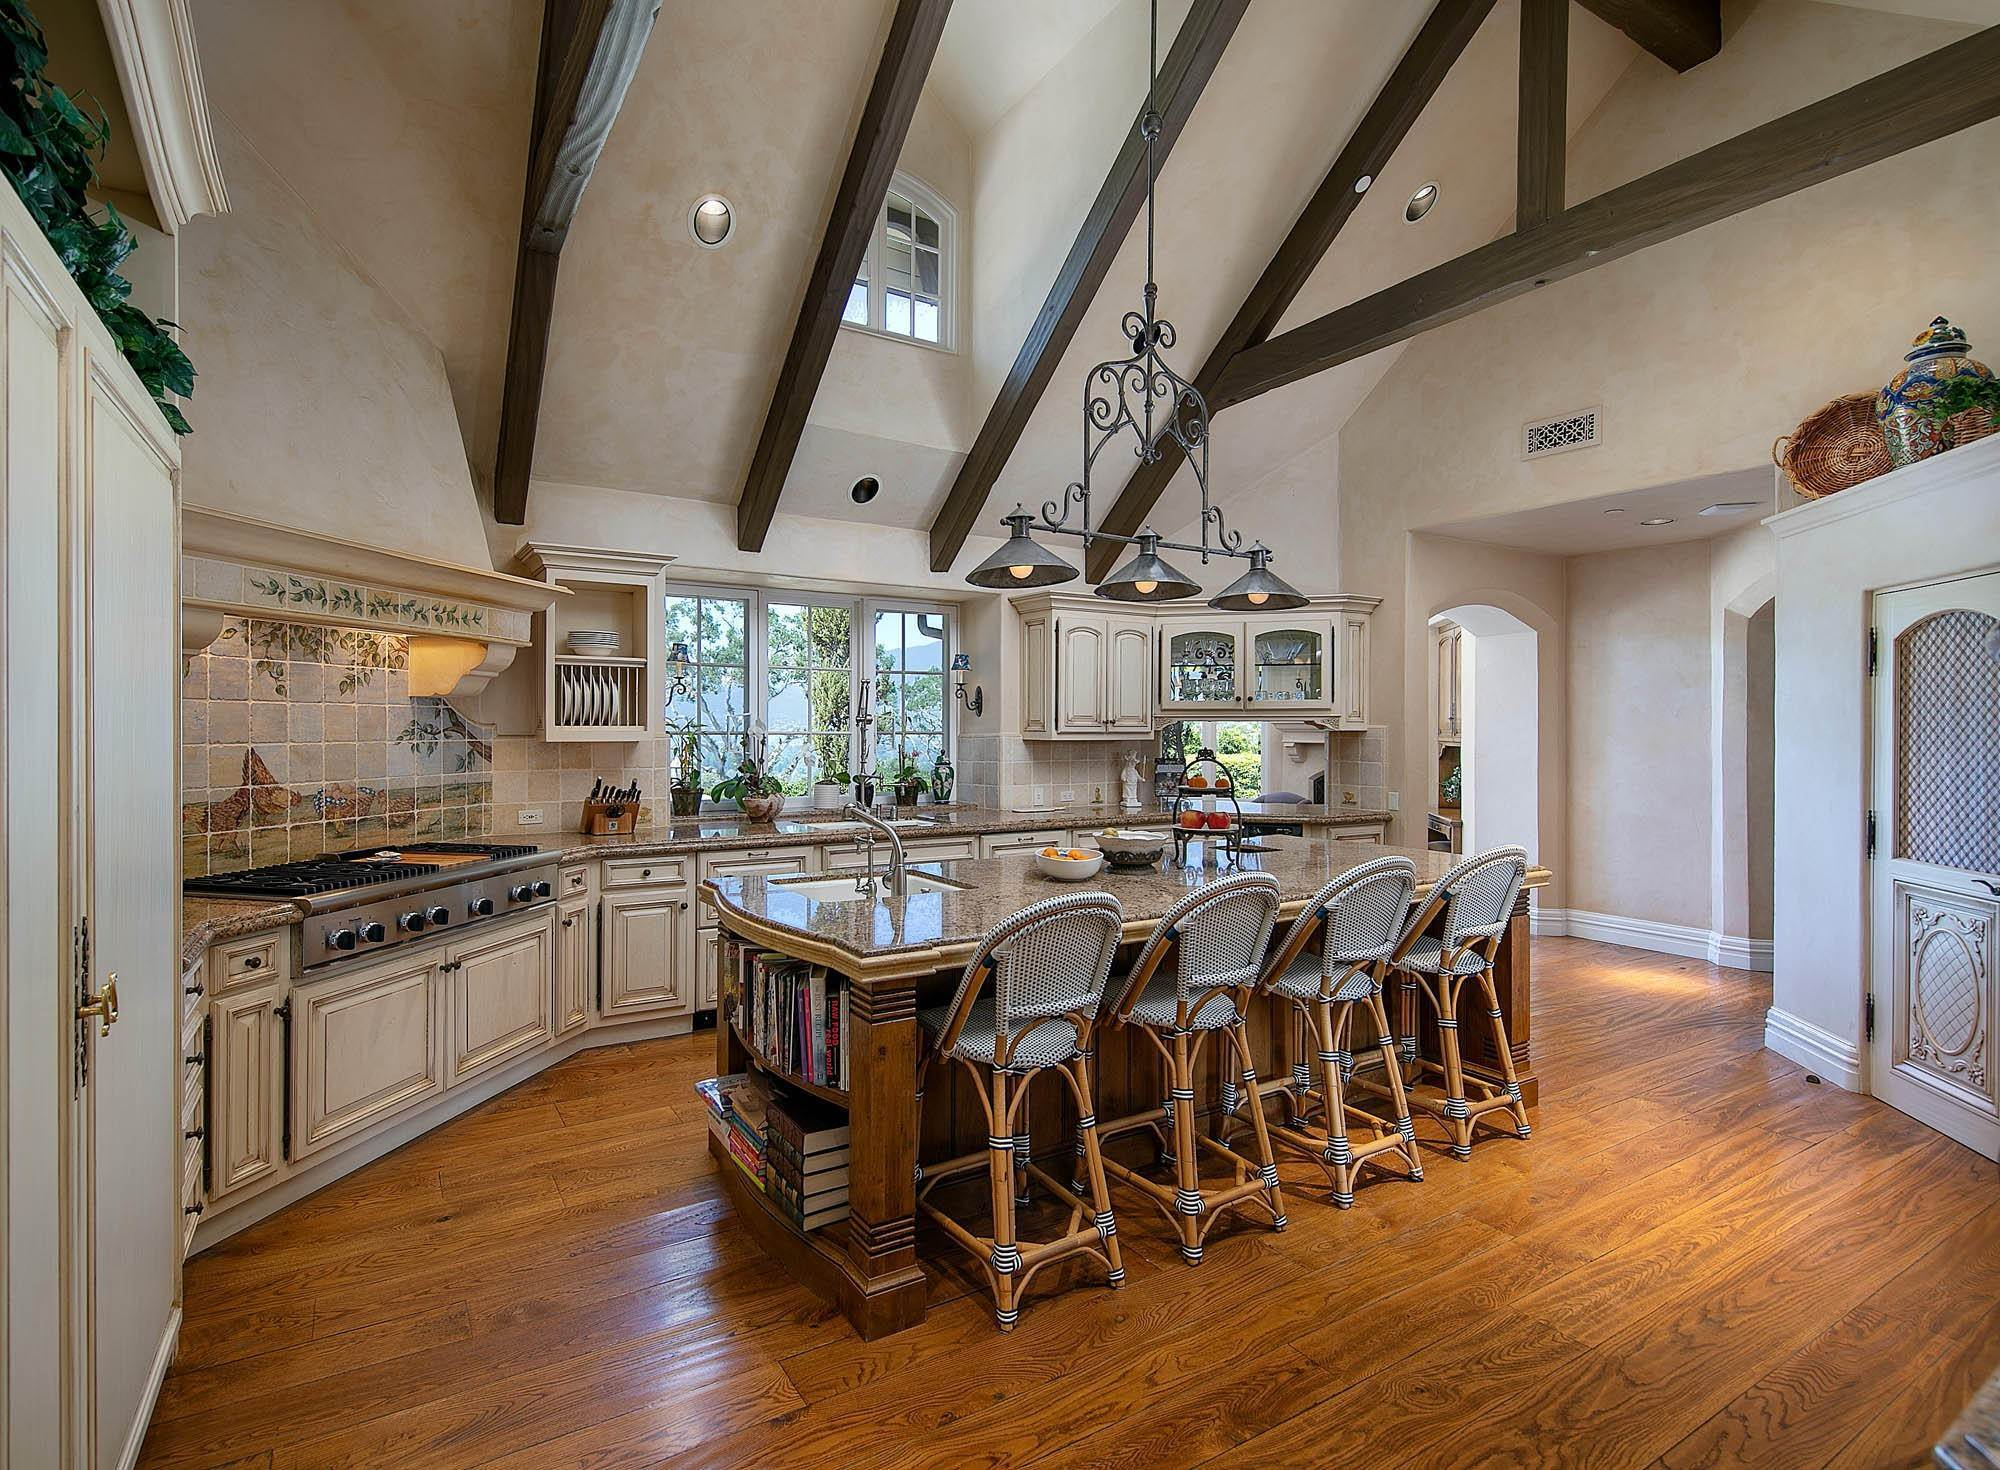 7. Estate for Sale at 4180 Cresta Avenue Santa Barbara, California 93110 United States